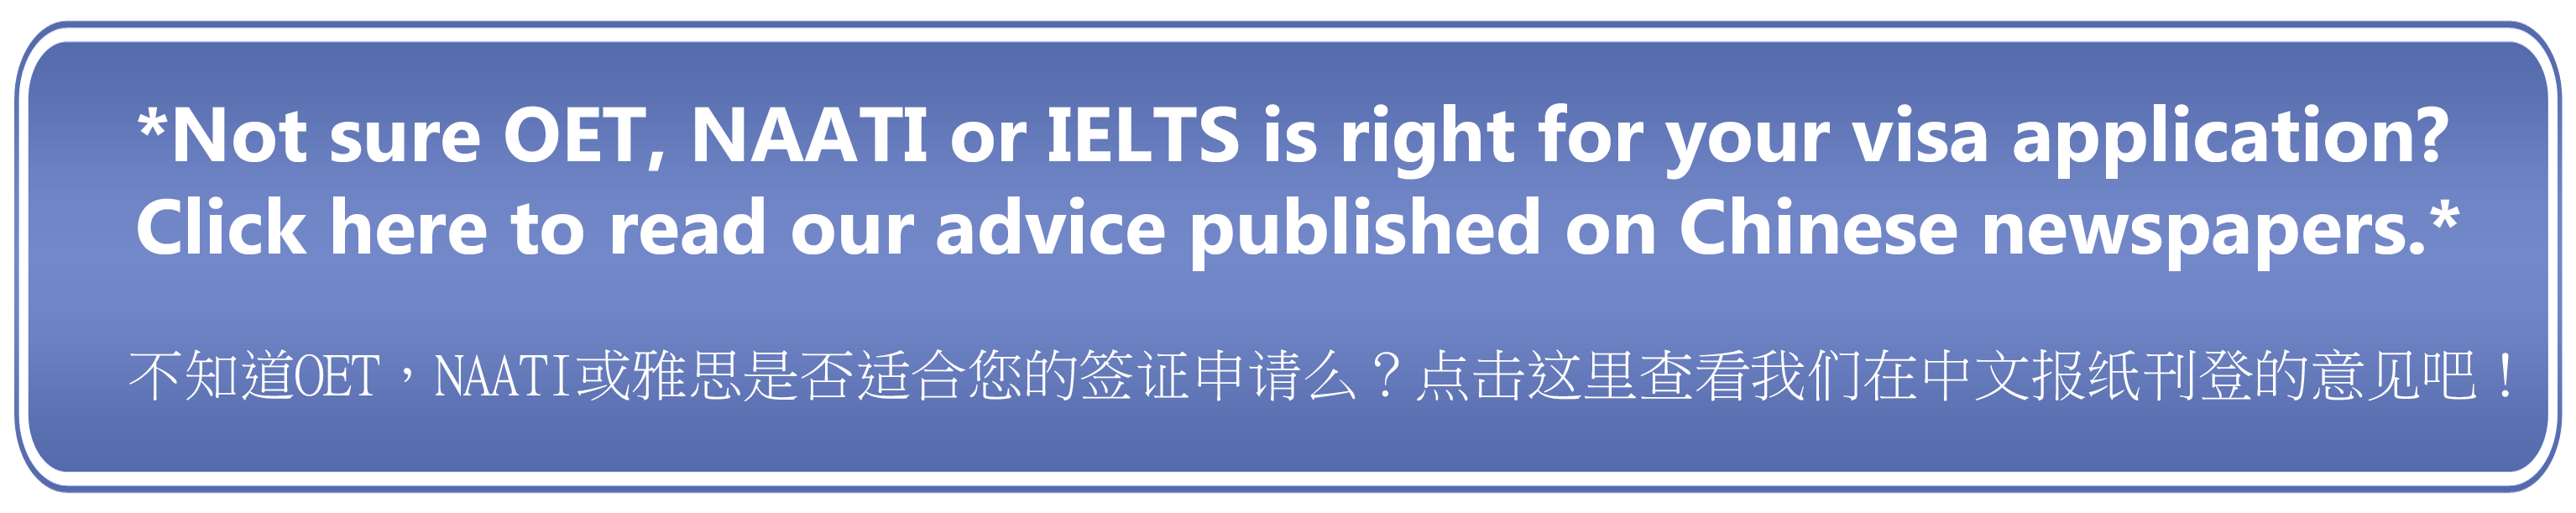 Not sure OET, NAATI or IELTS is right for your visa application?